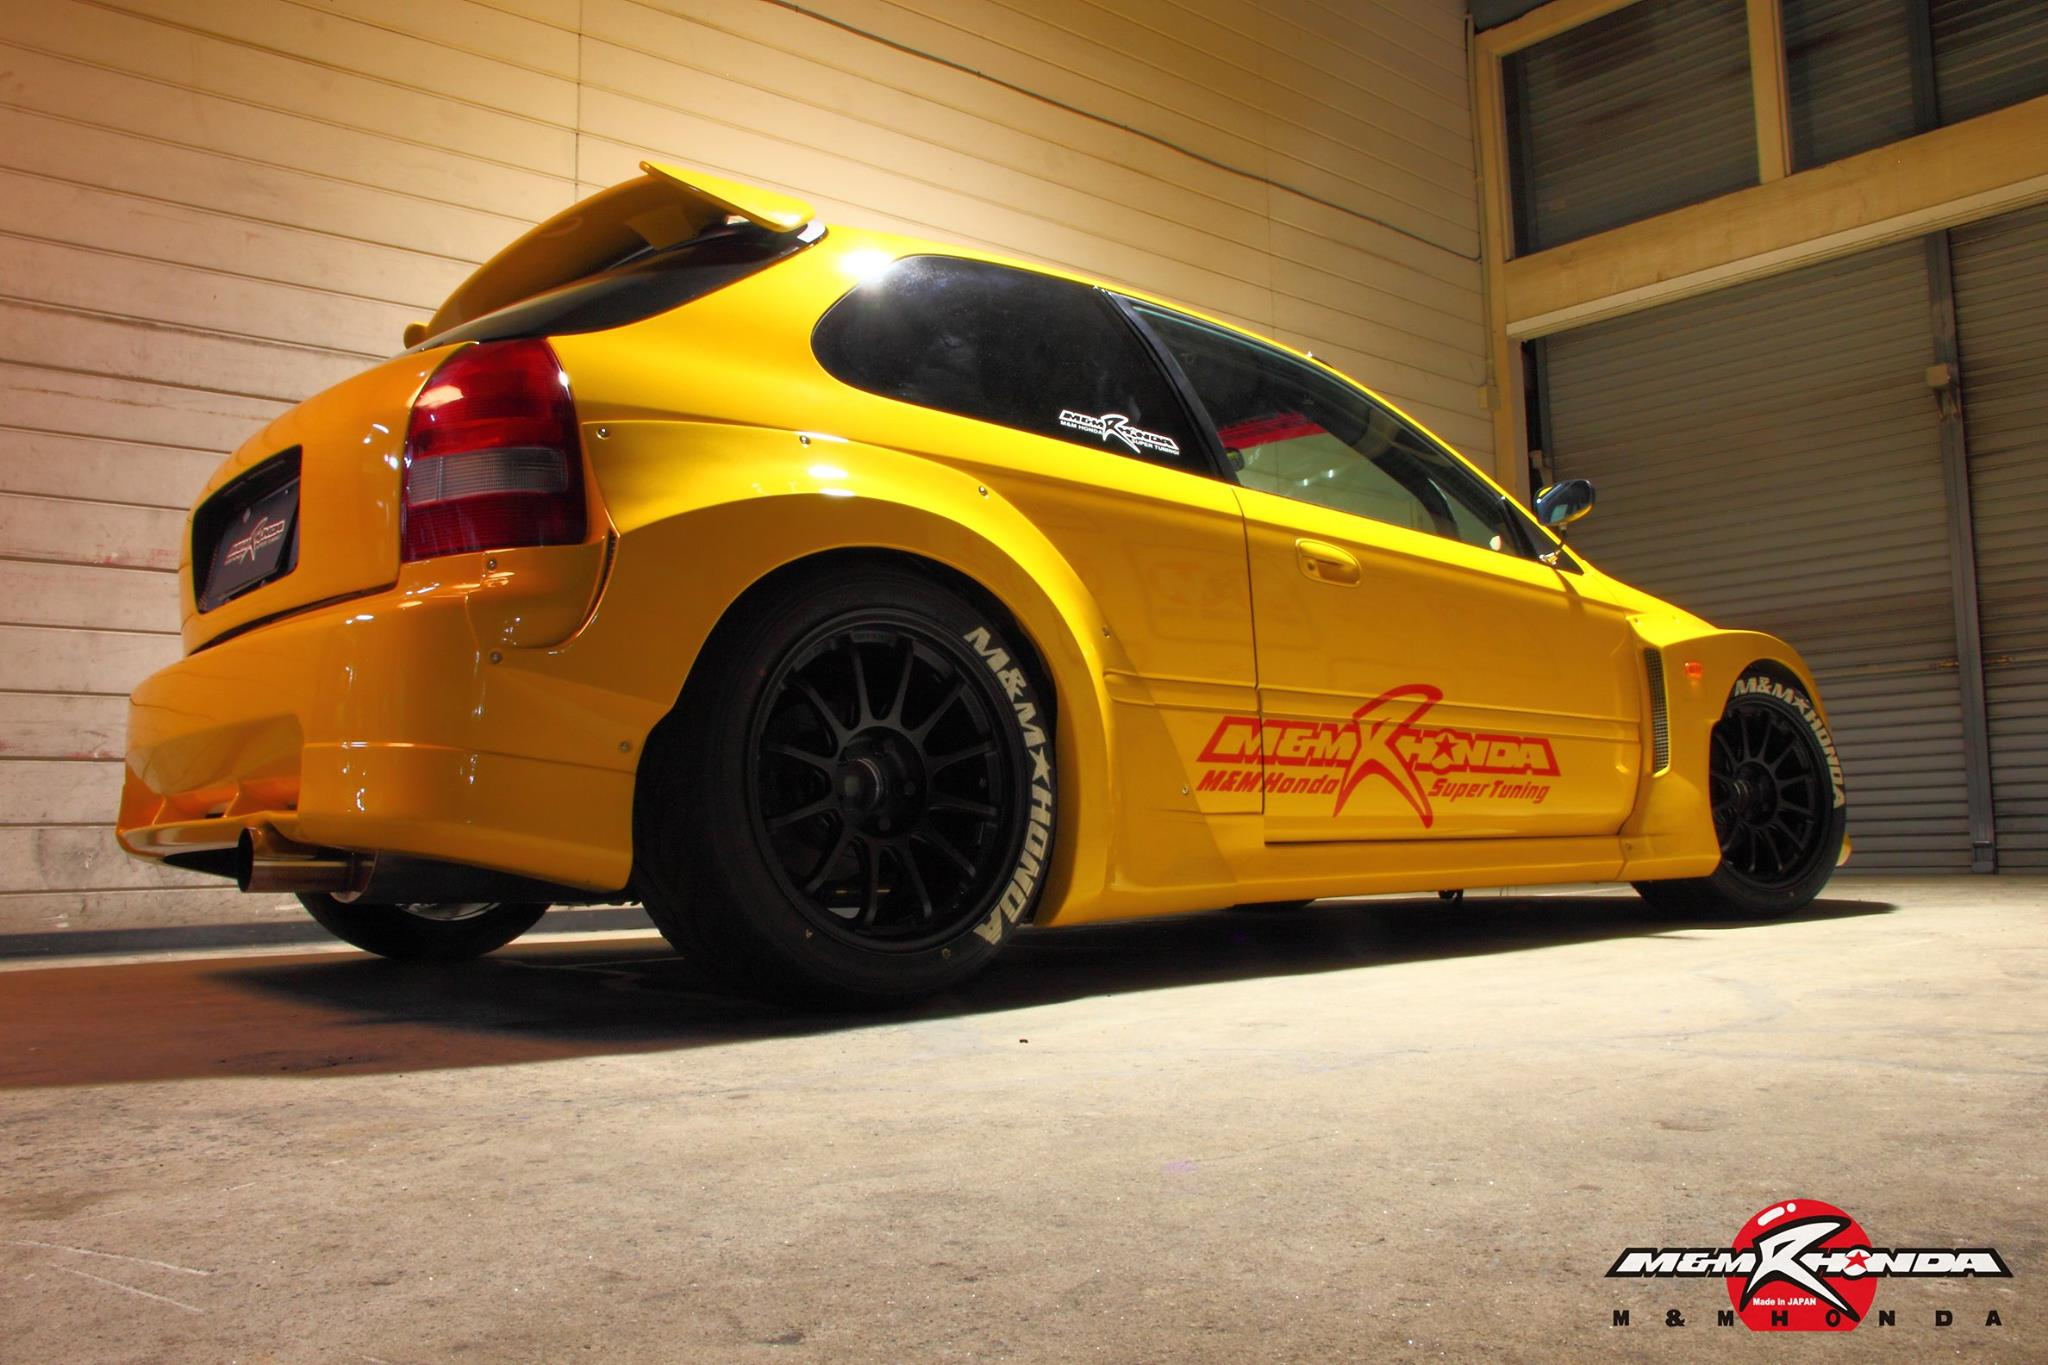 This Wide Body Honda Civic Type R By M M Honda Racing Is Perfection Art Of Gears